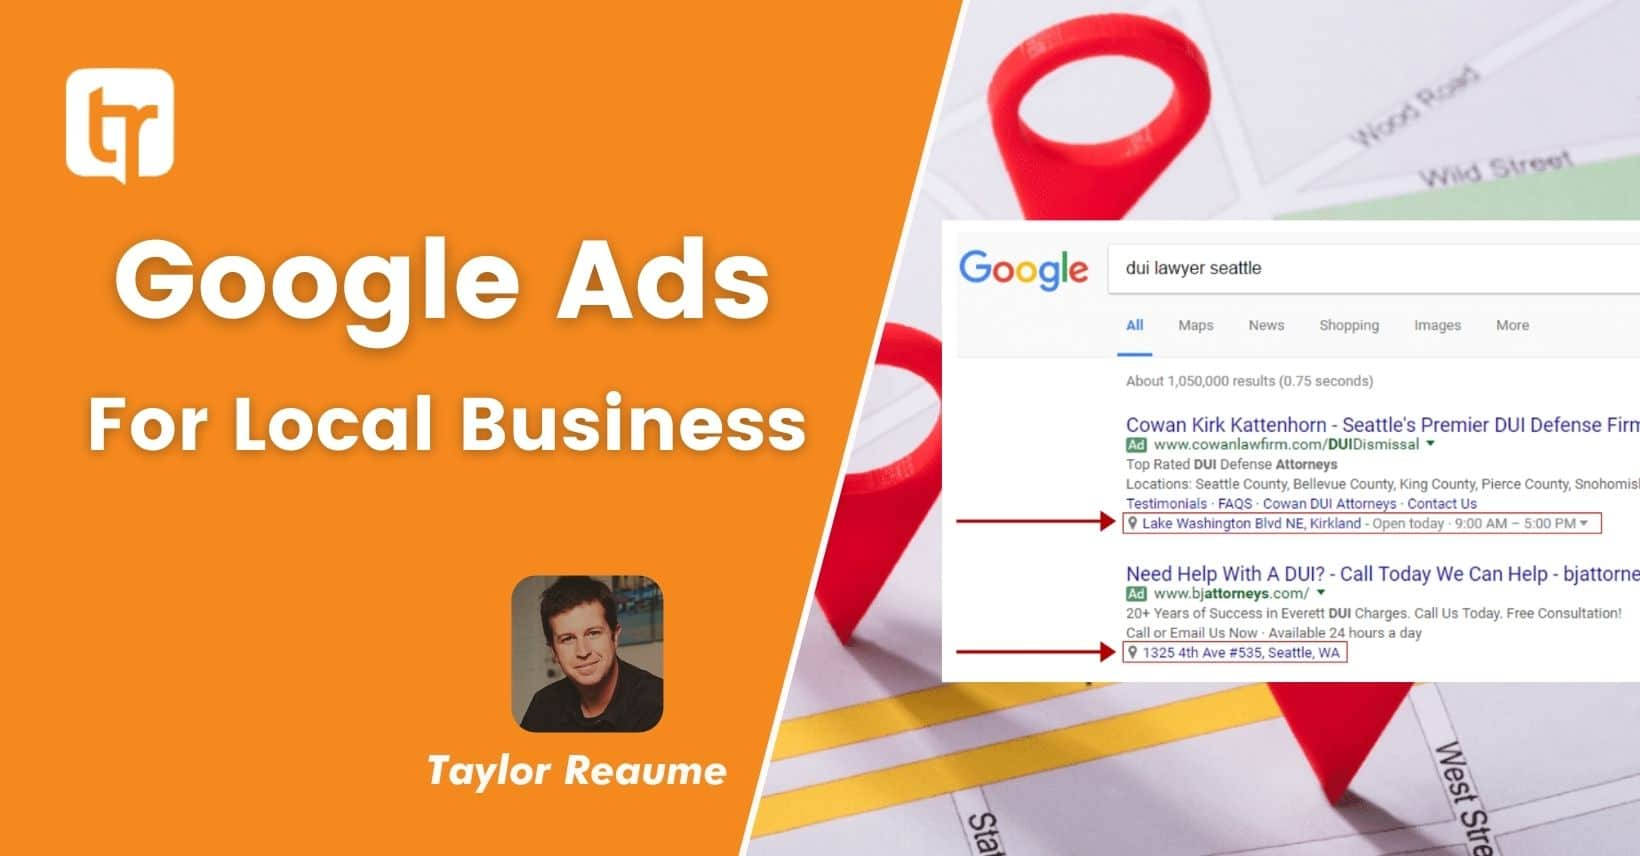 Google Ads For Local Business: 7 Tips & 3 Mistakes